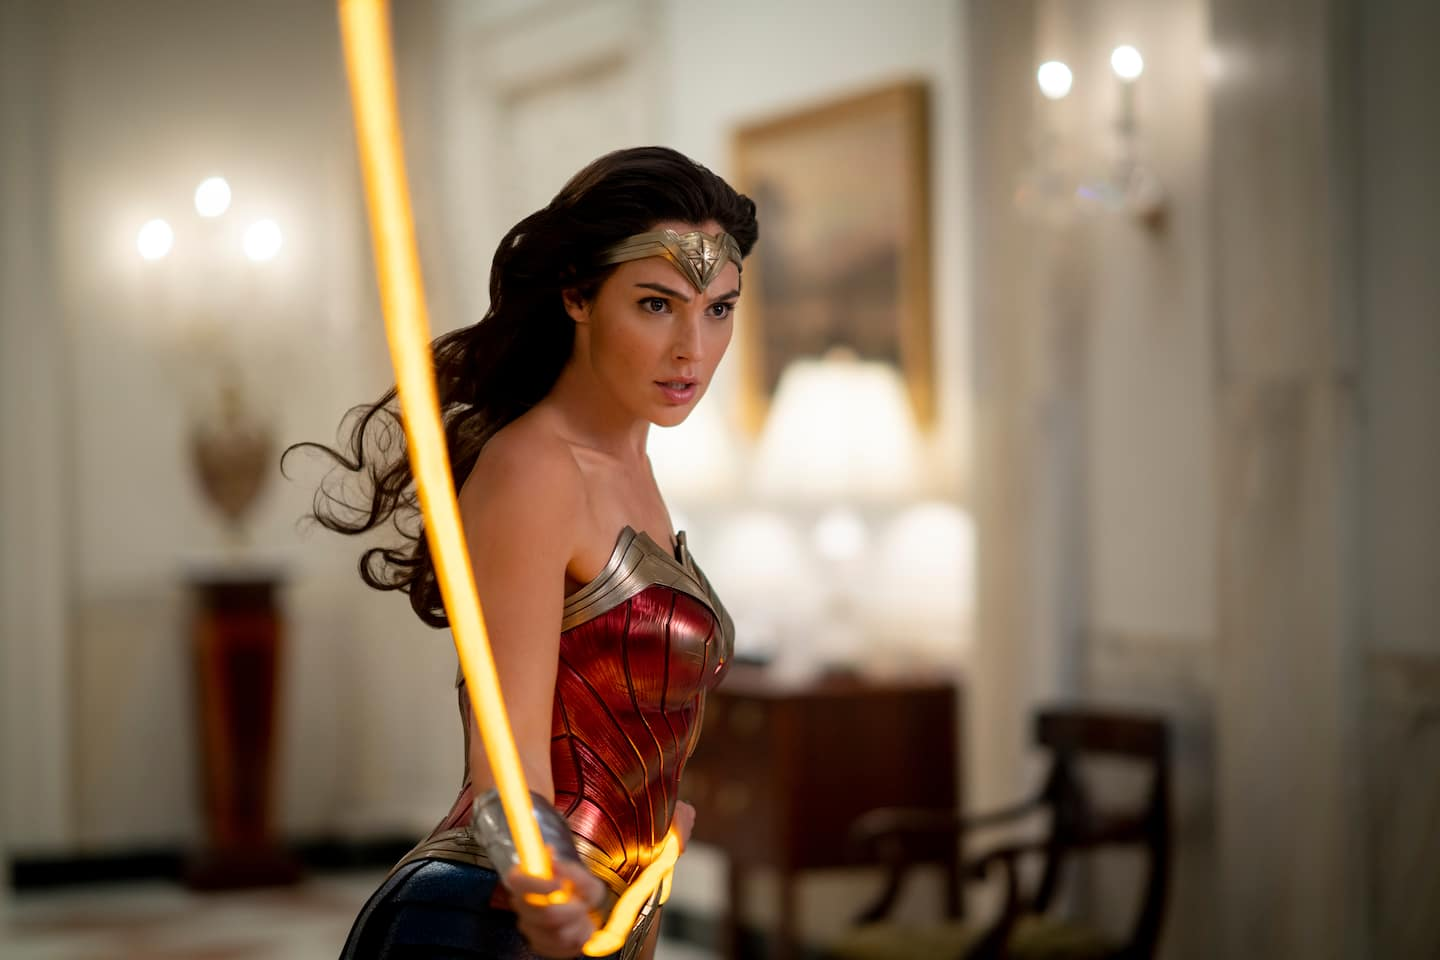 'Wonder Woman 1984' alternatives: 7 movies to watch that do the same things, but better